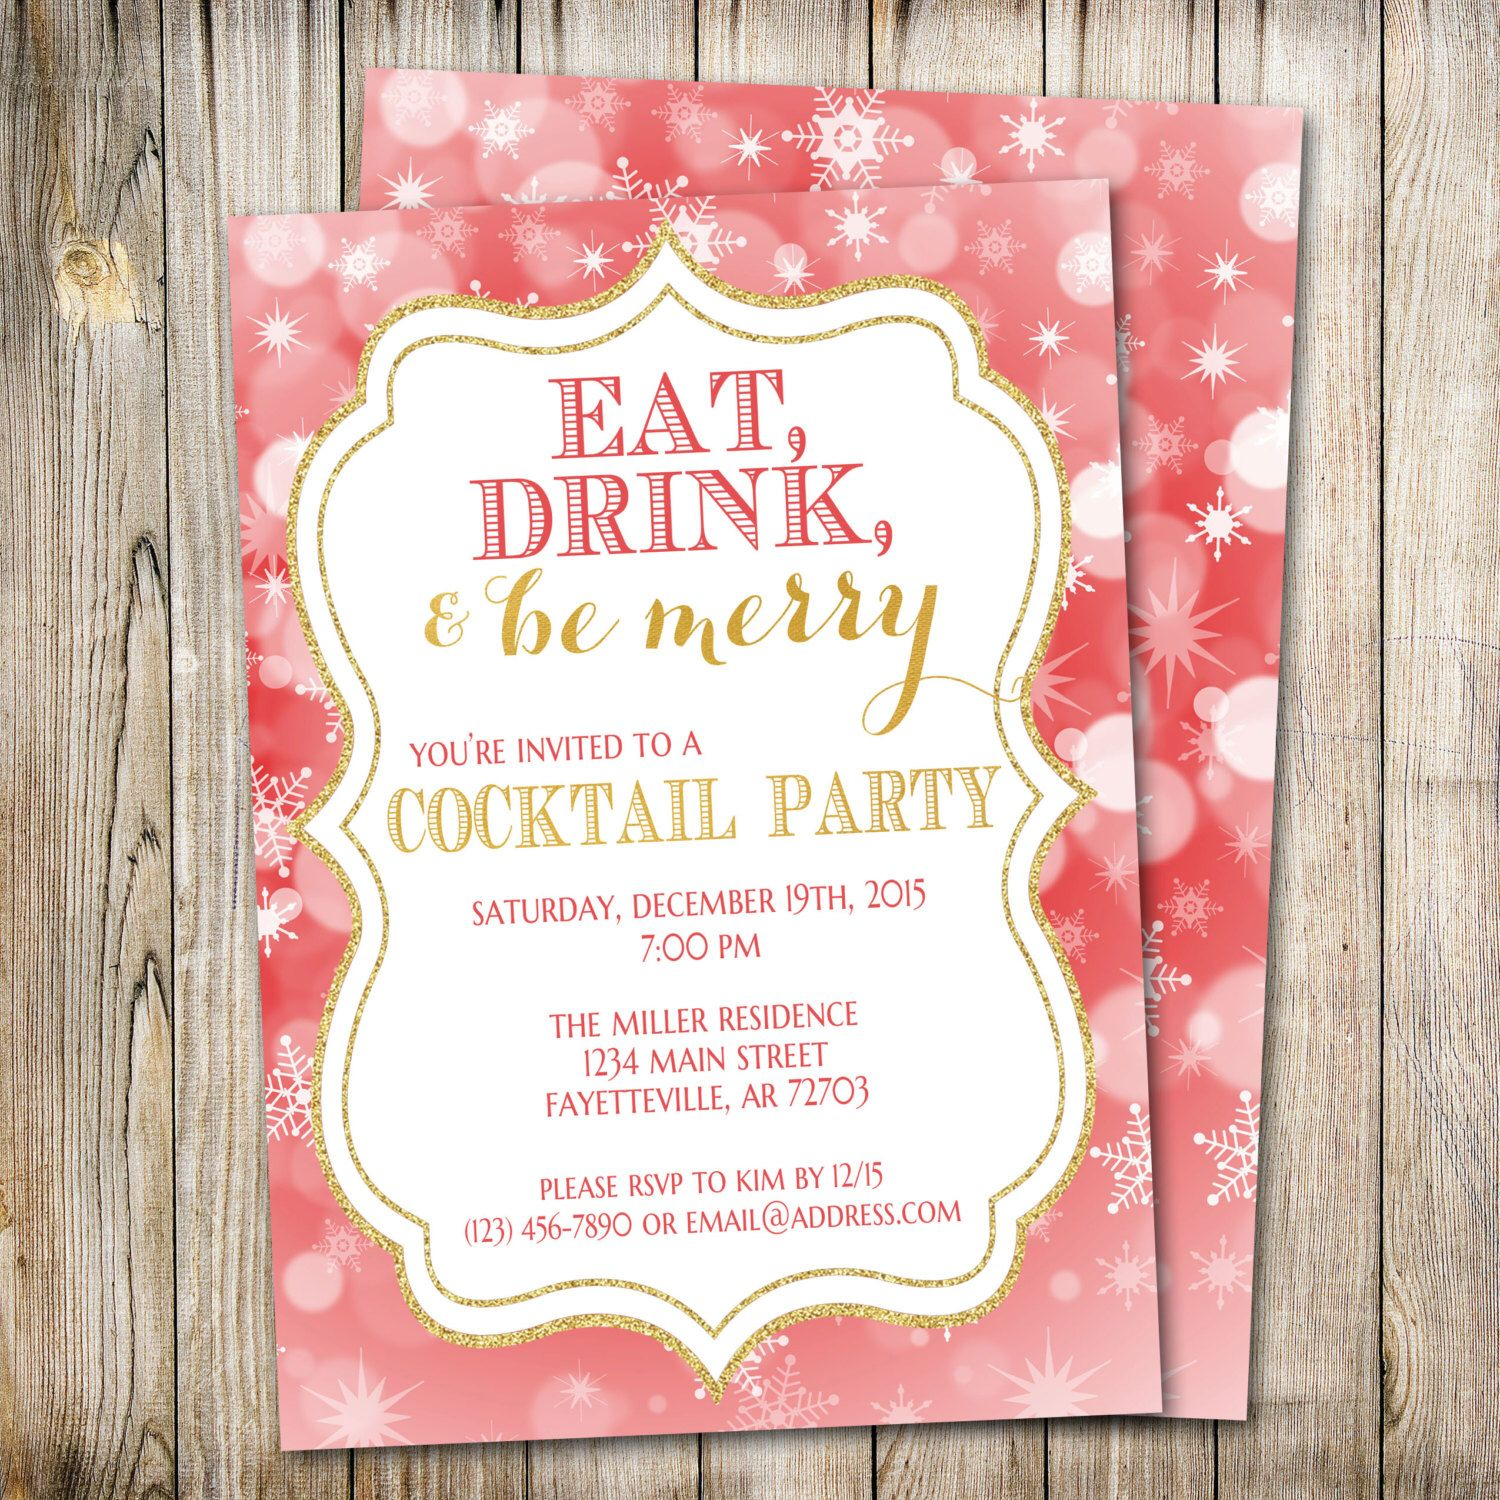 Eat Drink and Be Merry Invitation, Holiday Party Invitation, Christmas Invitation, Christmas Invite, Holiday Invitation, Printable by ThePaperTrailCo on Etsy https://www.etsy.com/listing/253101696/eat-drink-and-be-merry-invitation